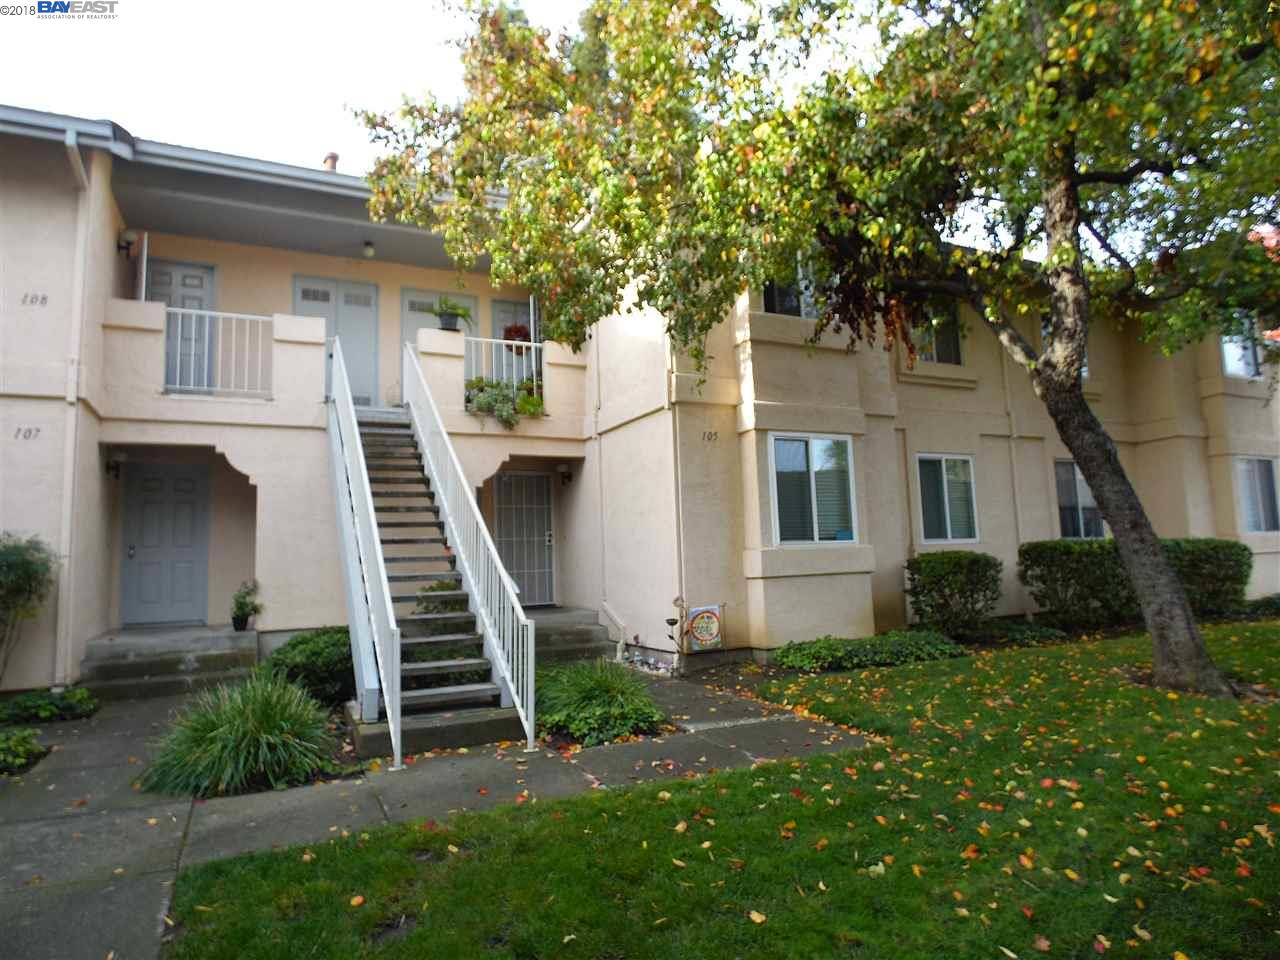 Sought after Brookmeadow complex, near Safeway center and Hwy 580. Amenities include 2 pools, 3 spas, clubhouse, tennis courts, playground and large park. Updated 2-bedroom 2-bath first floor condo. Dual pane windows new in 2016. New blinds 2008. Kitchen updated fall 2017. New vinyl flooring, new cabinets, new counters. Fridge new 2002, Dishwasher 2011, stove 2007, carpets 2008. Walk-in shower in updated master bath 2007. Hall bath updated 10/18.  New water Heater 2014. Air conditioner/furnace new 2002. New thermostat 2016. Fire sprinkler system. In-unit laundry, with new stackable washer/dryer 2017. Secluded location in complex, surrounded by green belts. Enclosed patio with storage and sensor light. 2 assigned parking spaces, one covered. Lots of guest spaces. Lower HOA fees for above average amenities.